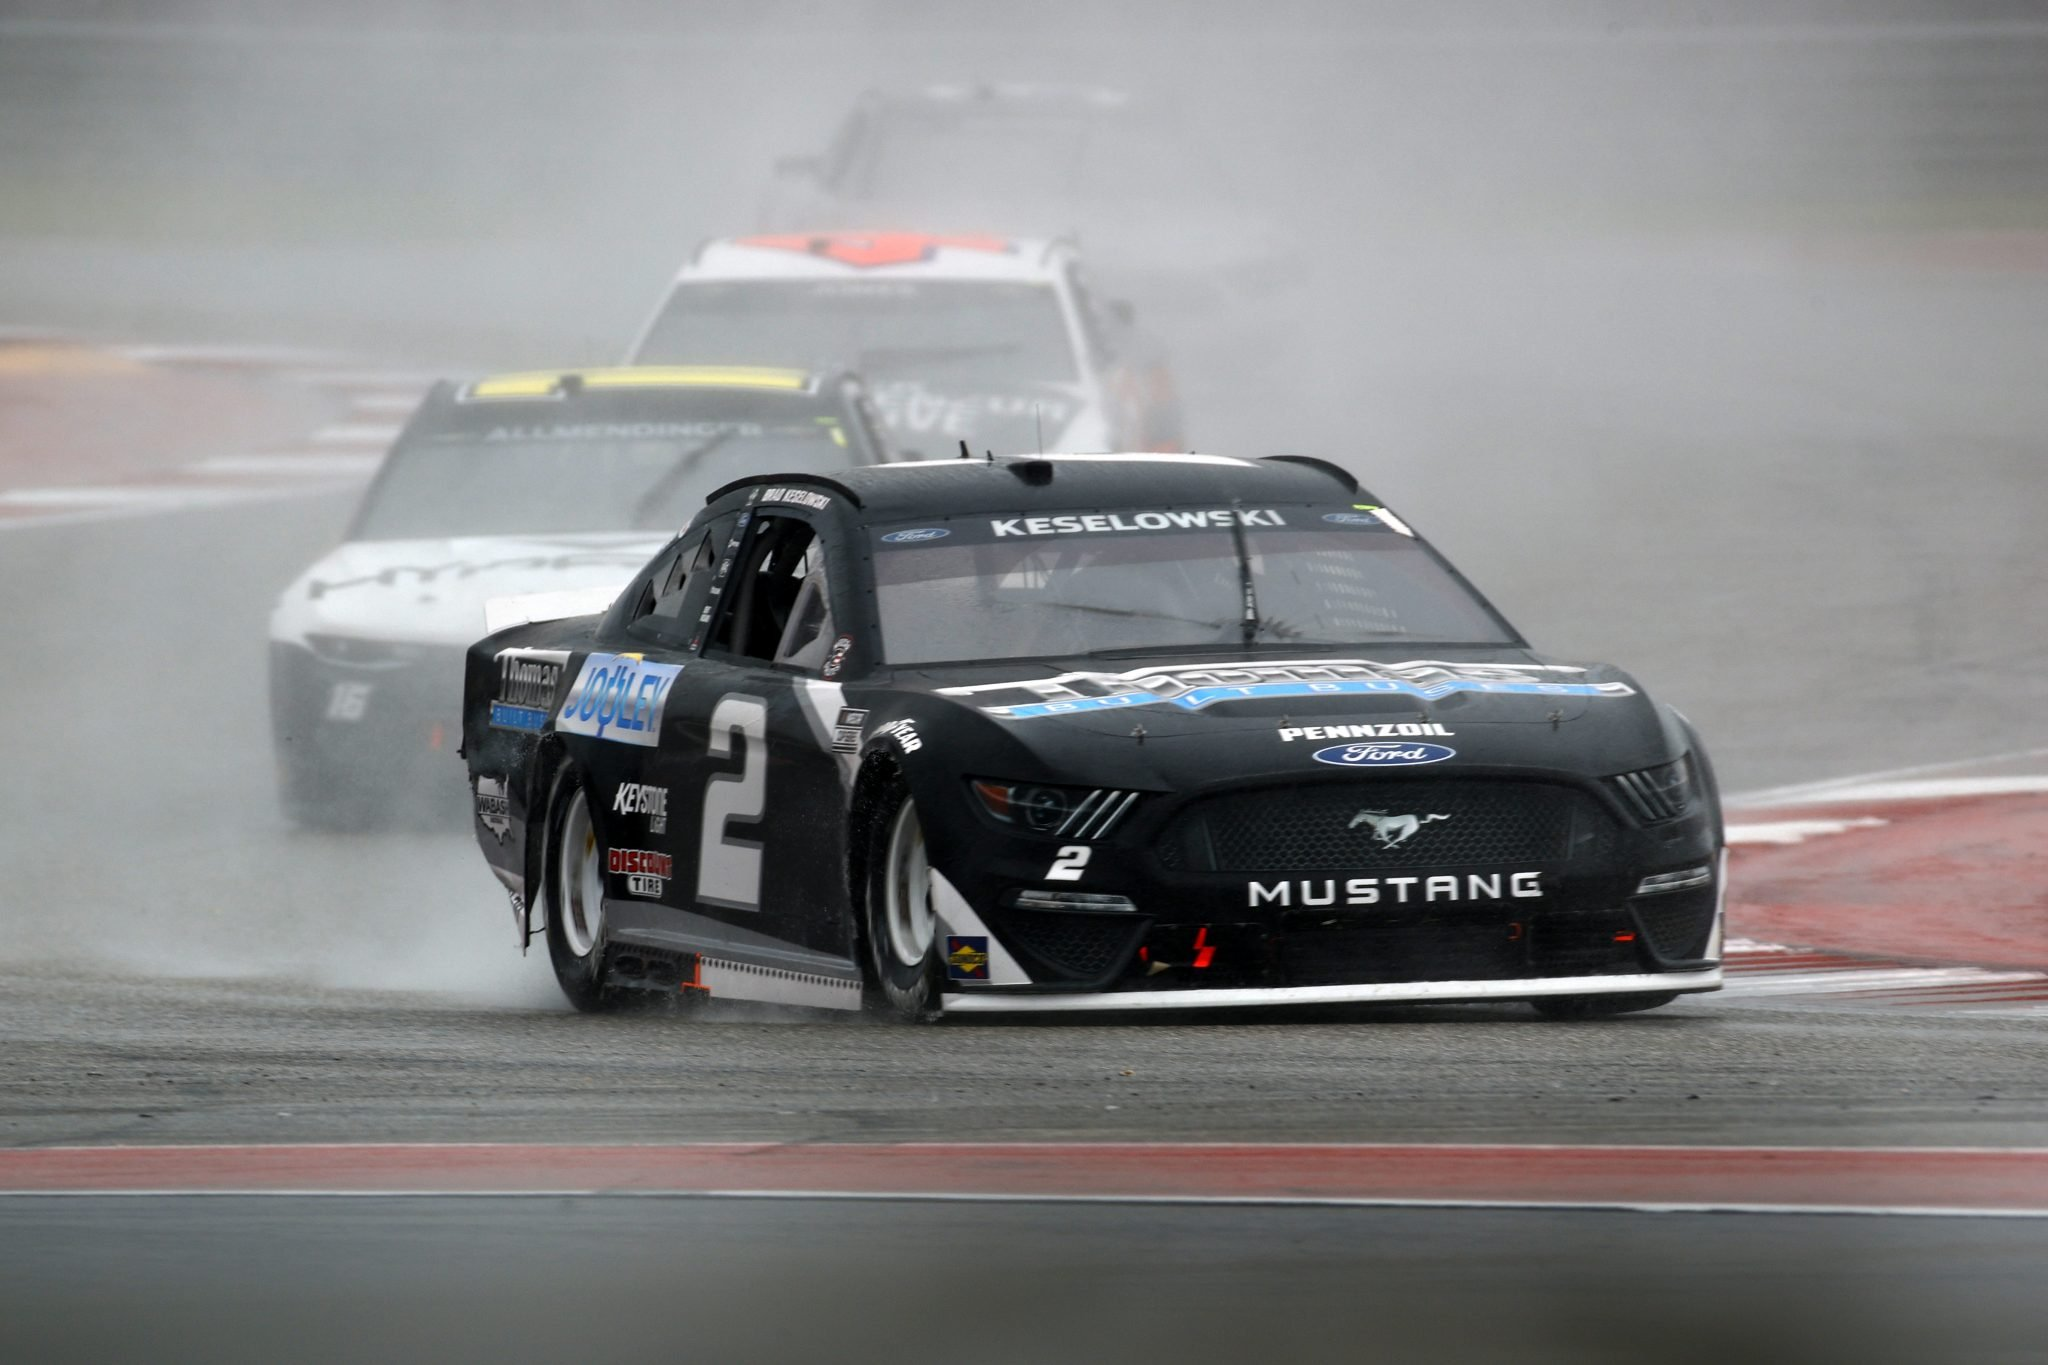 AUSTIN, TEXAS - MAY 23: Brad Keselowski, driver of the #2 Thomas Built Buses Ford, drives during the NASCAR Cup Series EchoPark Texas Grand Prix at Circuit of The Americas on May 23, 2021 in Austin, Texas. (Photo by Jared C. Tilton/Getty Images)   Getty Images